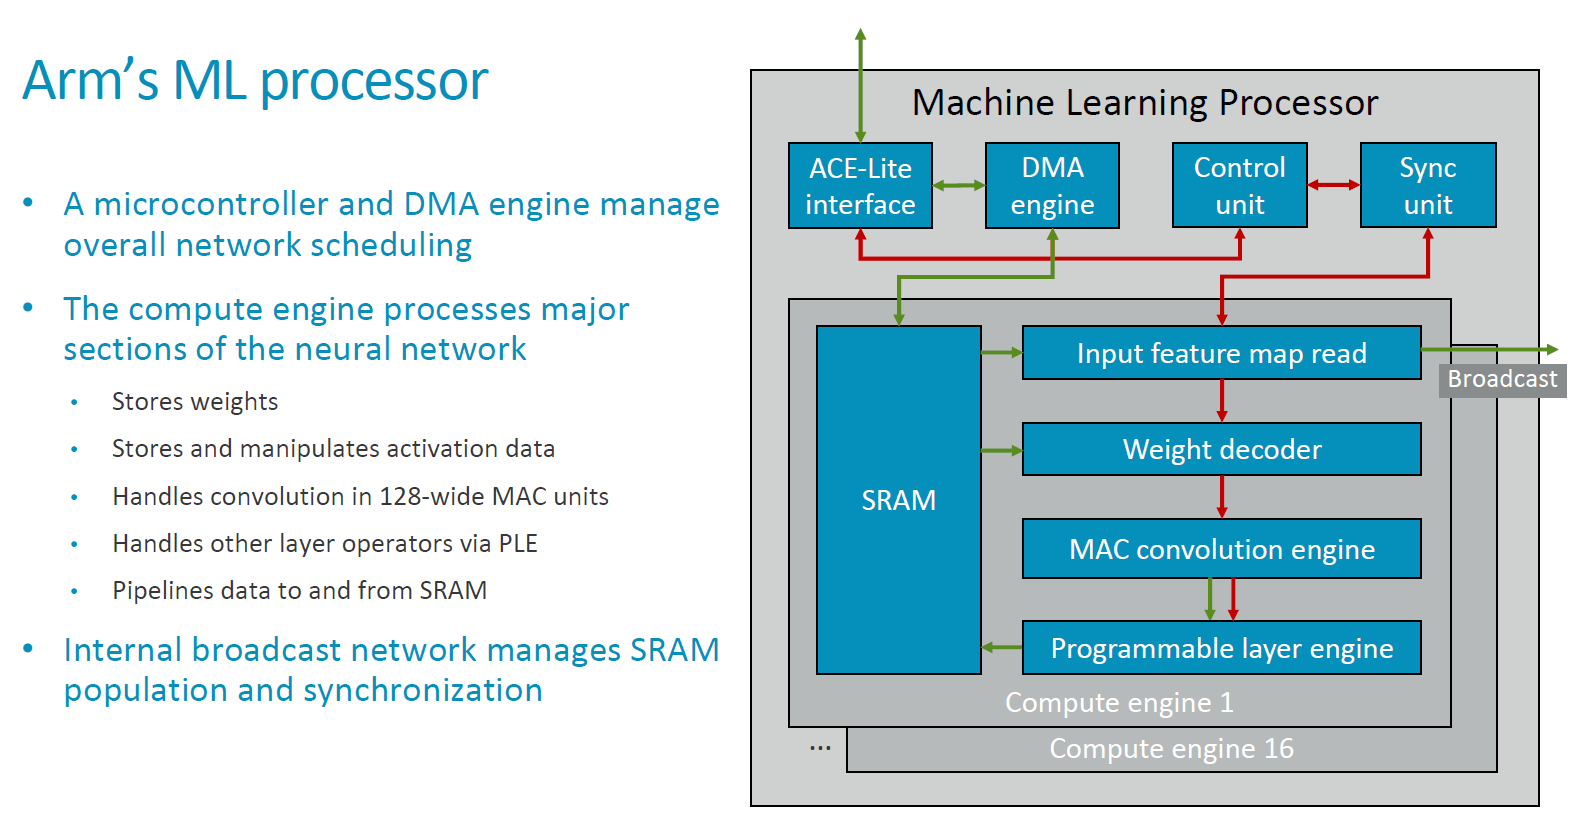 hight resolution of starting off at a more detailed view of the ip s block diagram the mlp consists of common functional blocks such as the memory interconnect interfaces as